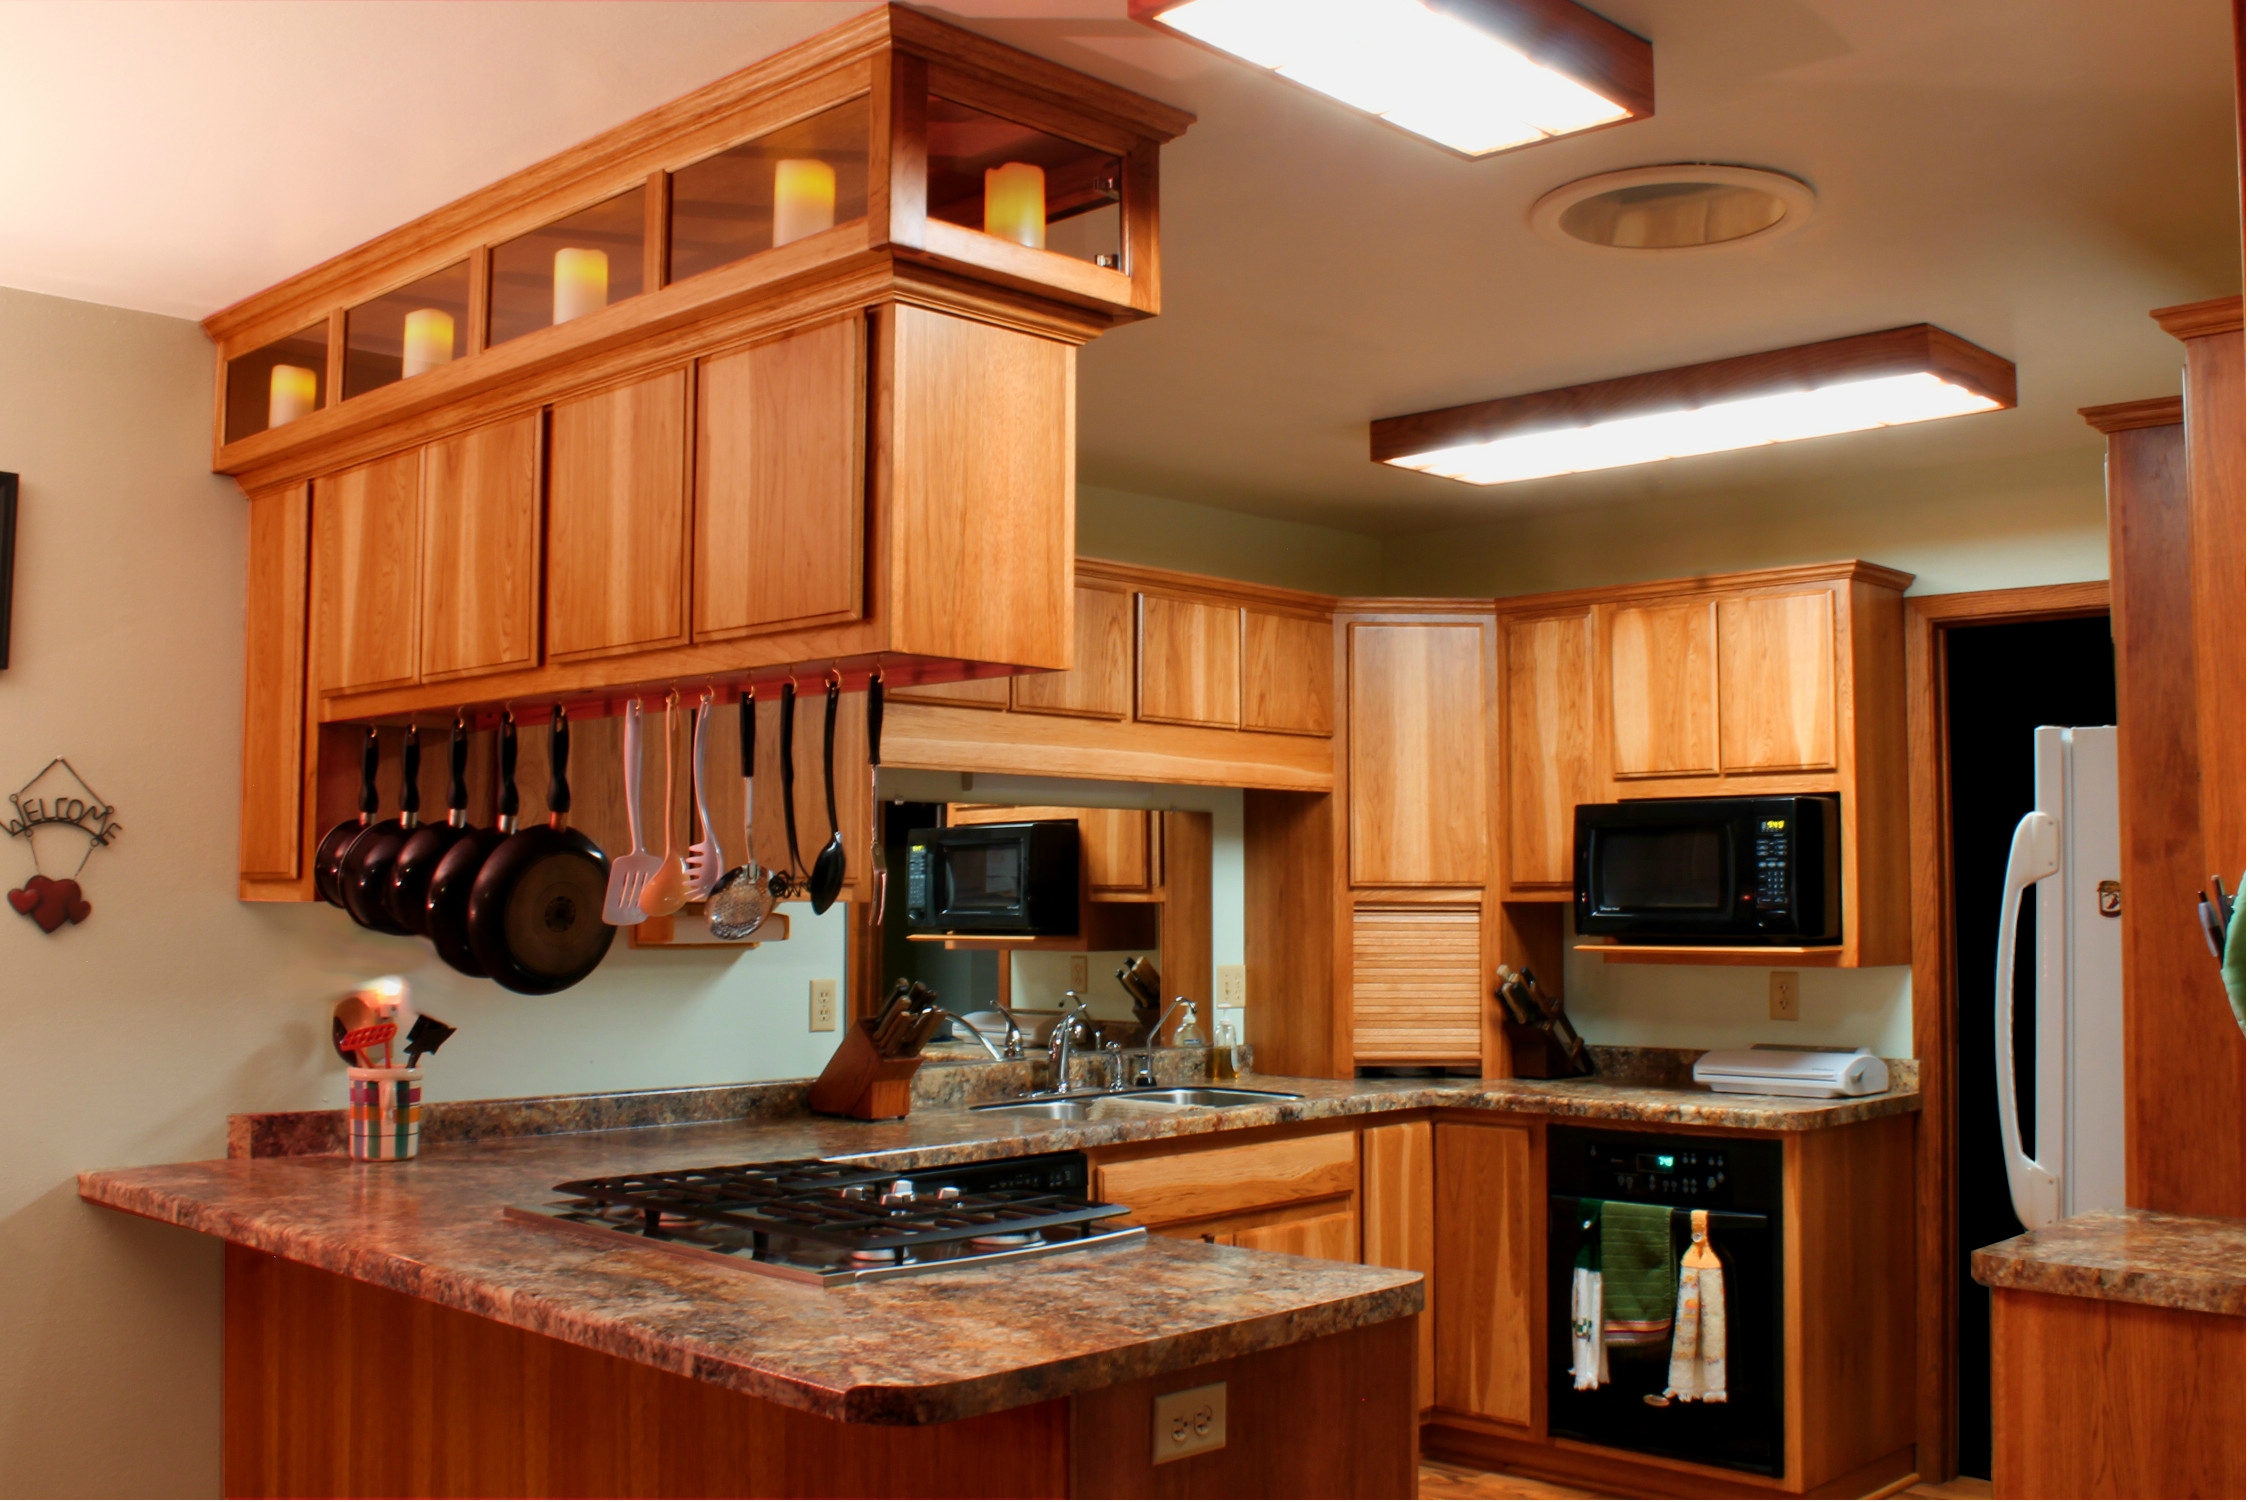 hickory kitchen this kitchen custom built in hickory features - Kitchen Cabinet Com